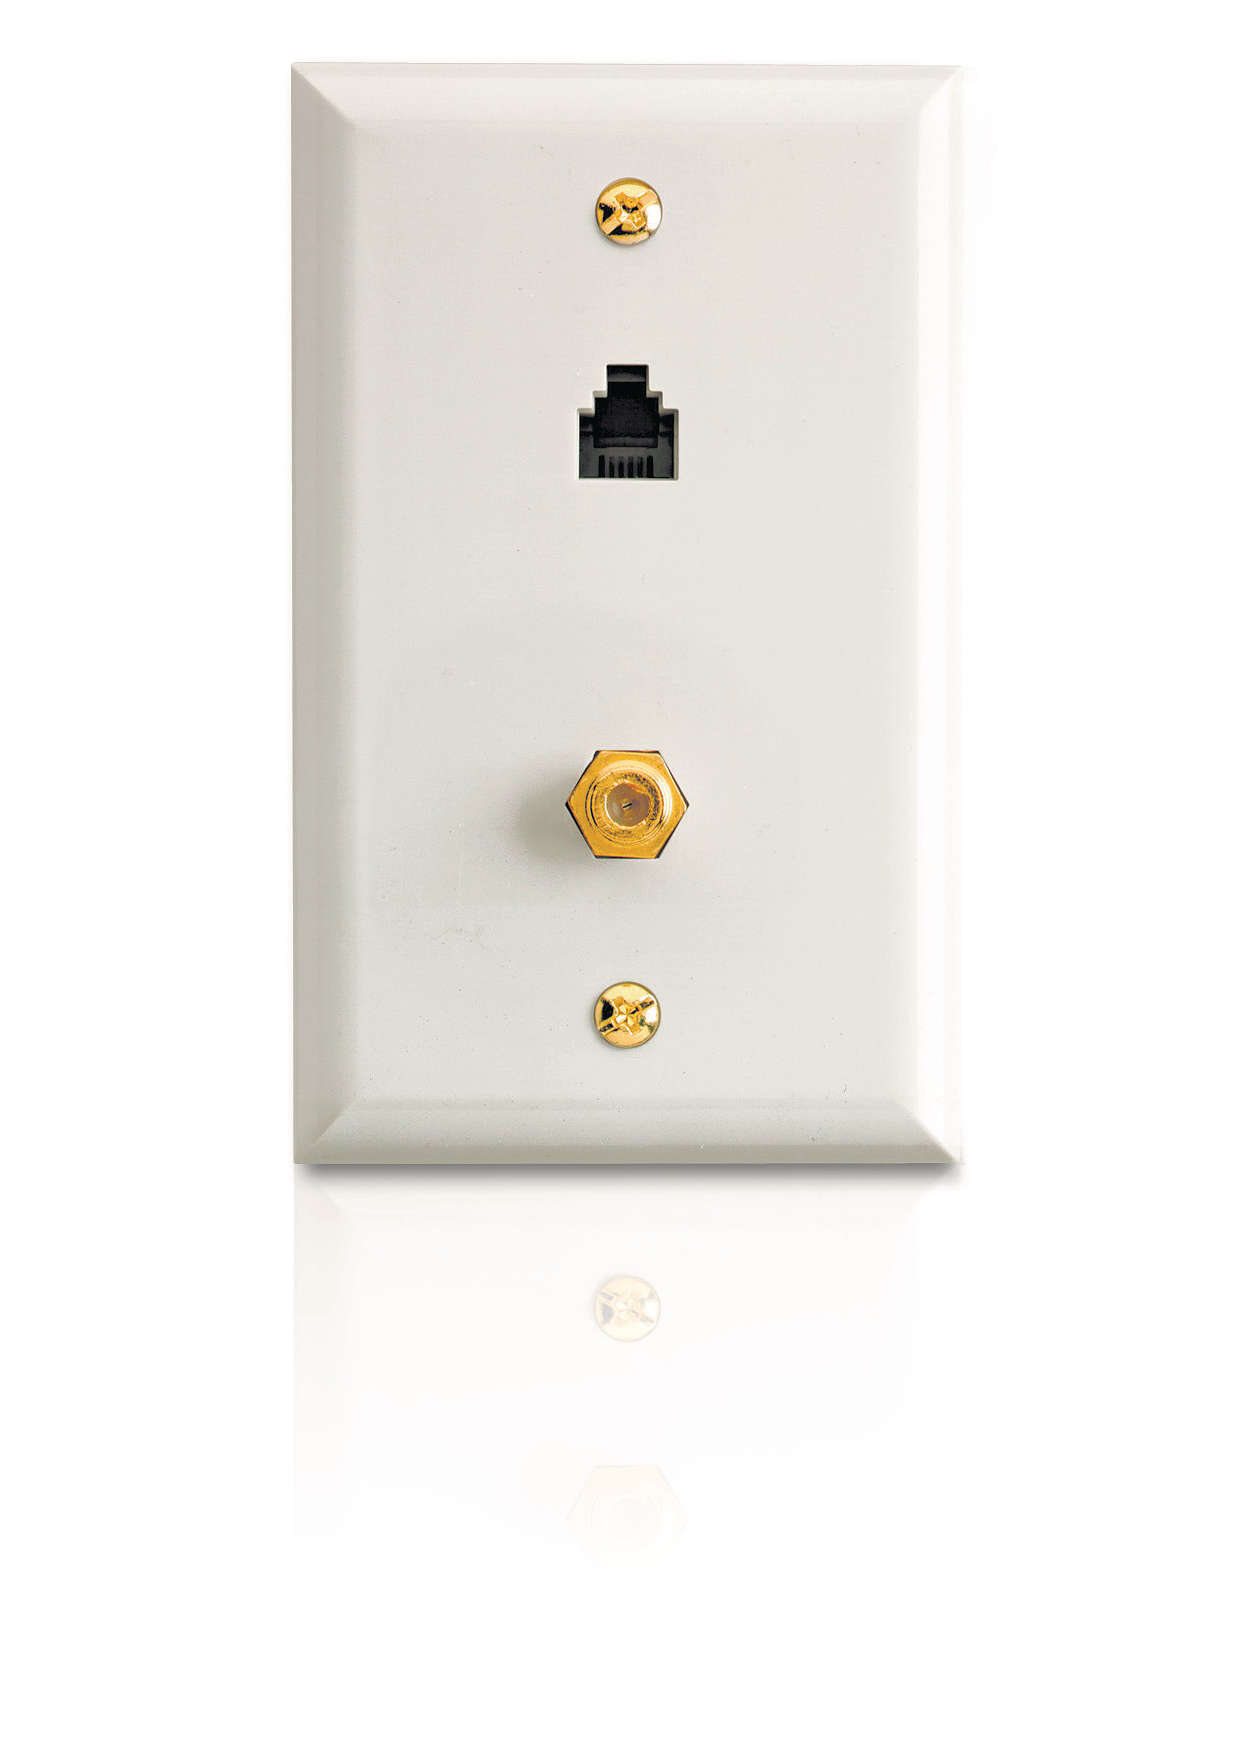 Create a phone and coaxial jack